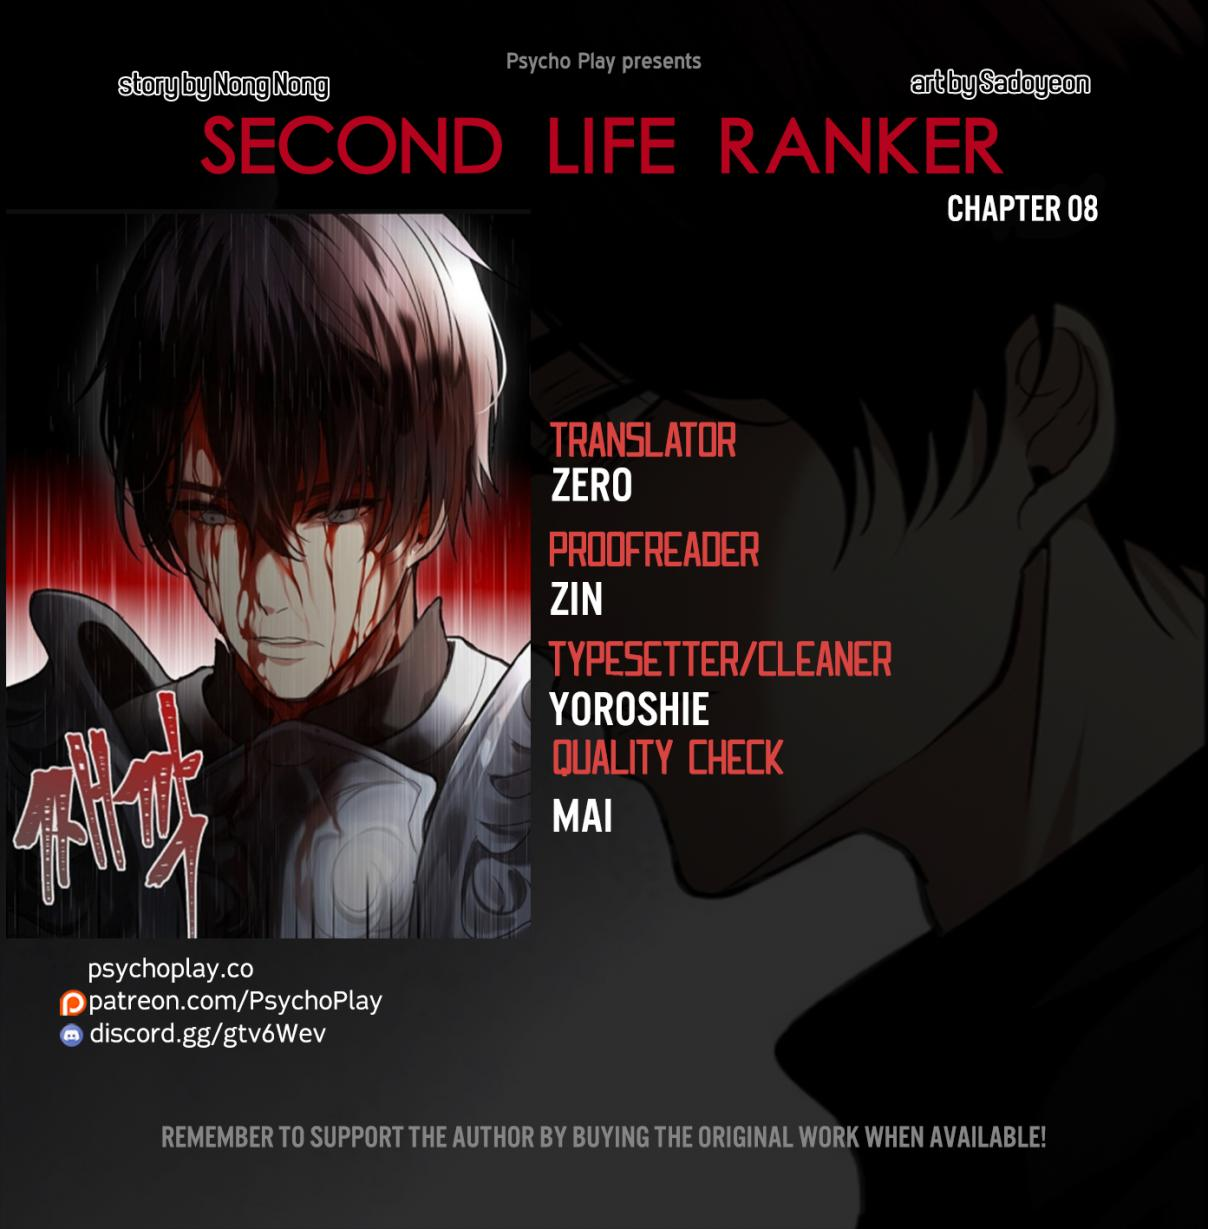 Second Life Ranker Ch. 8